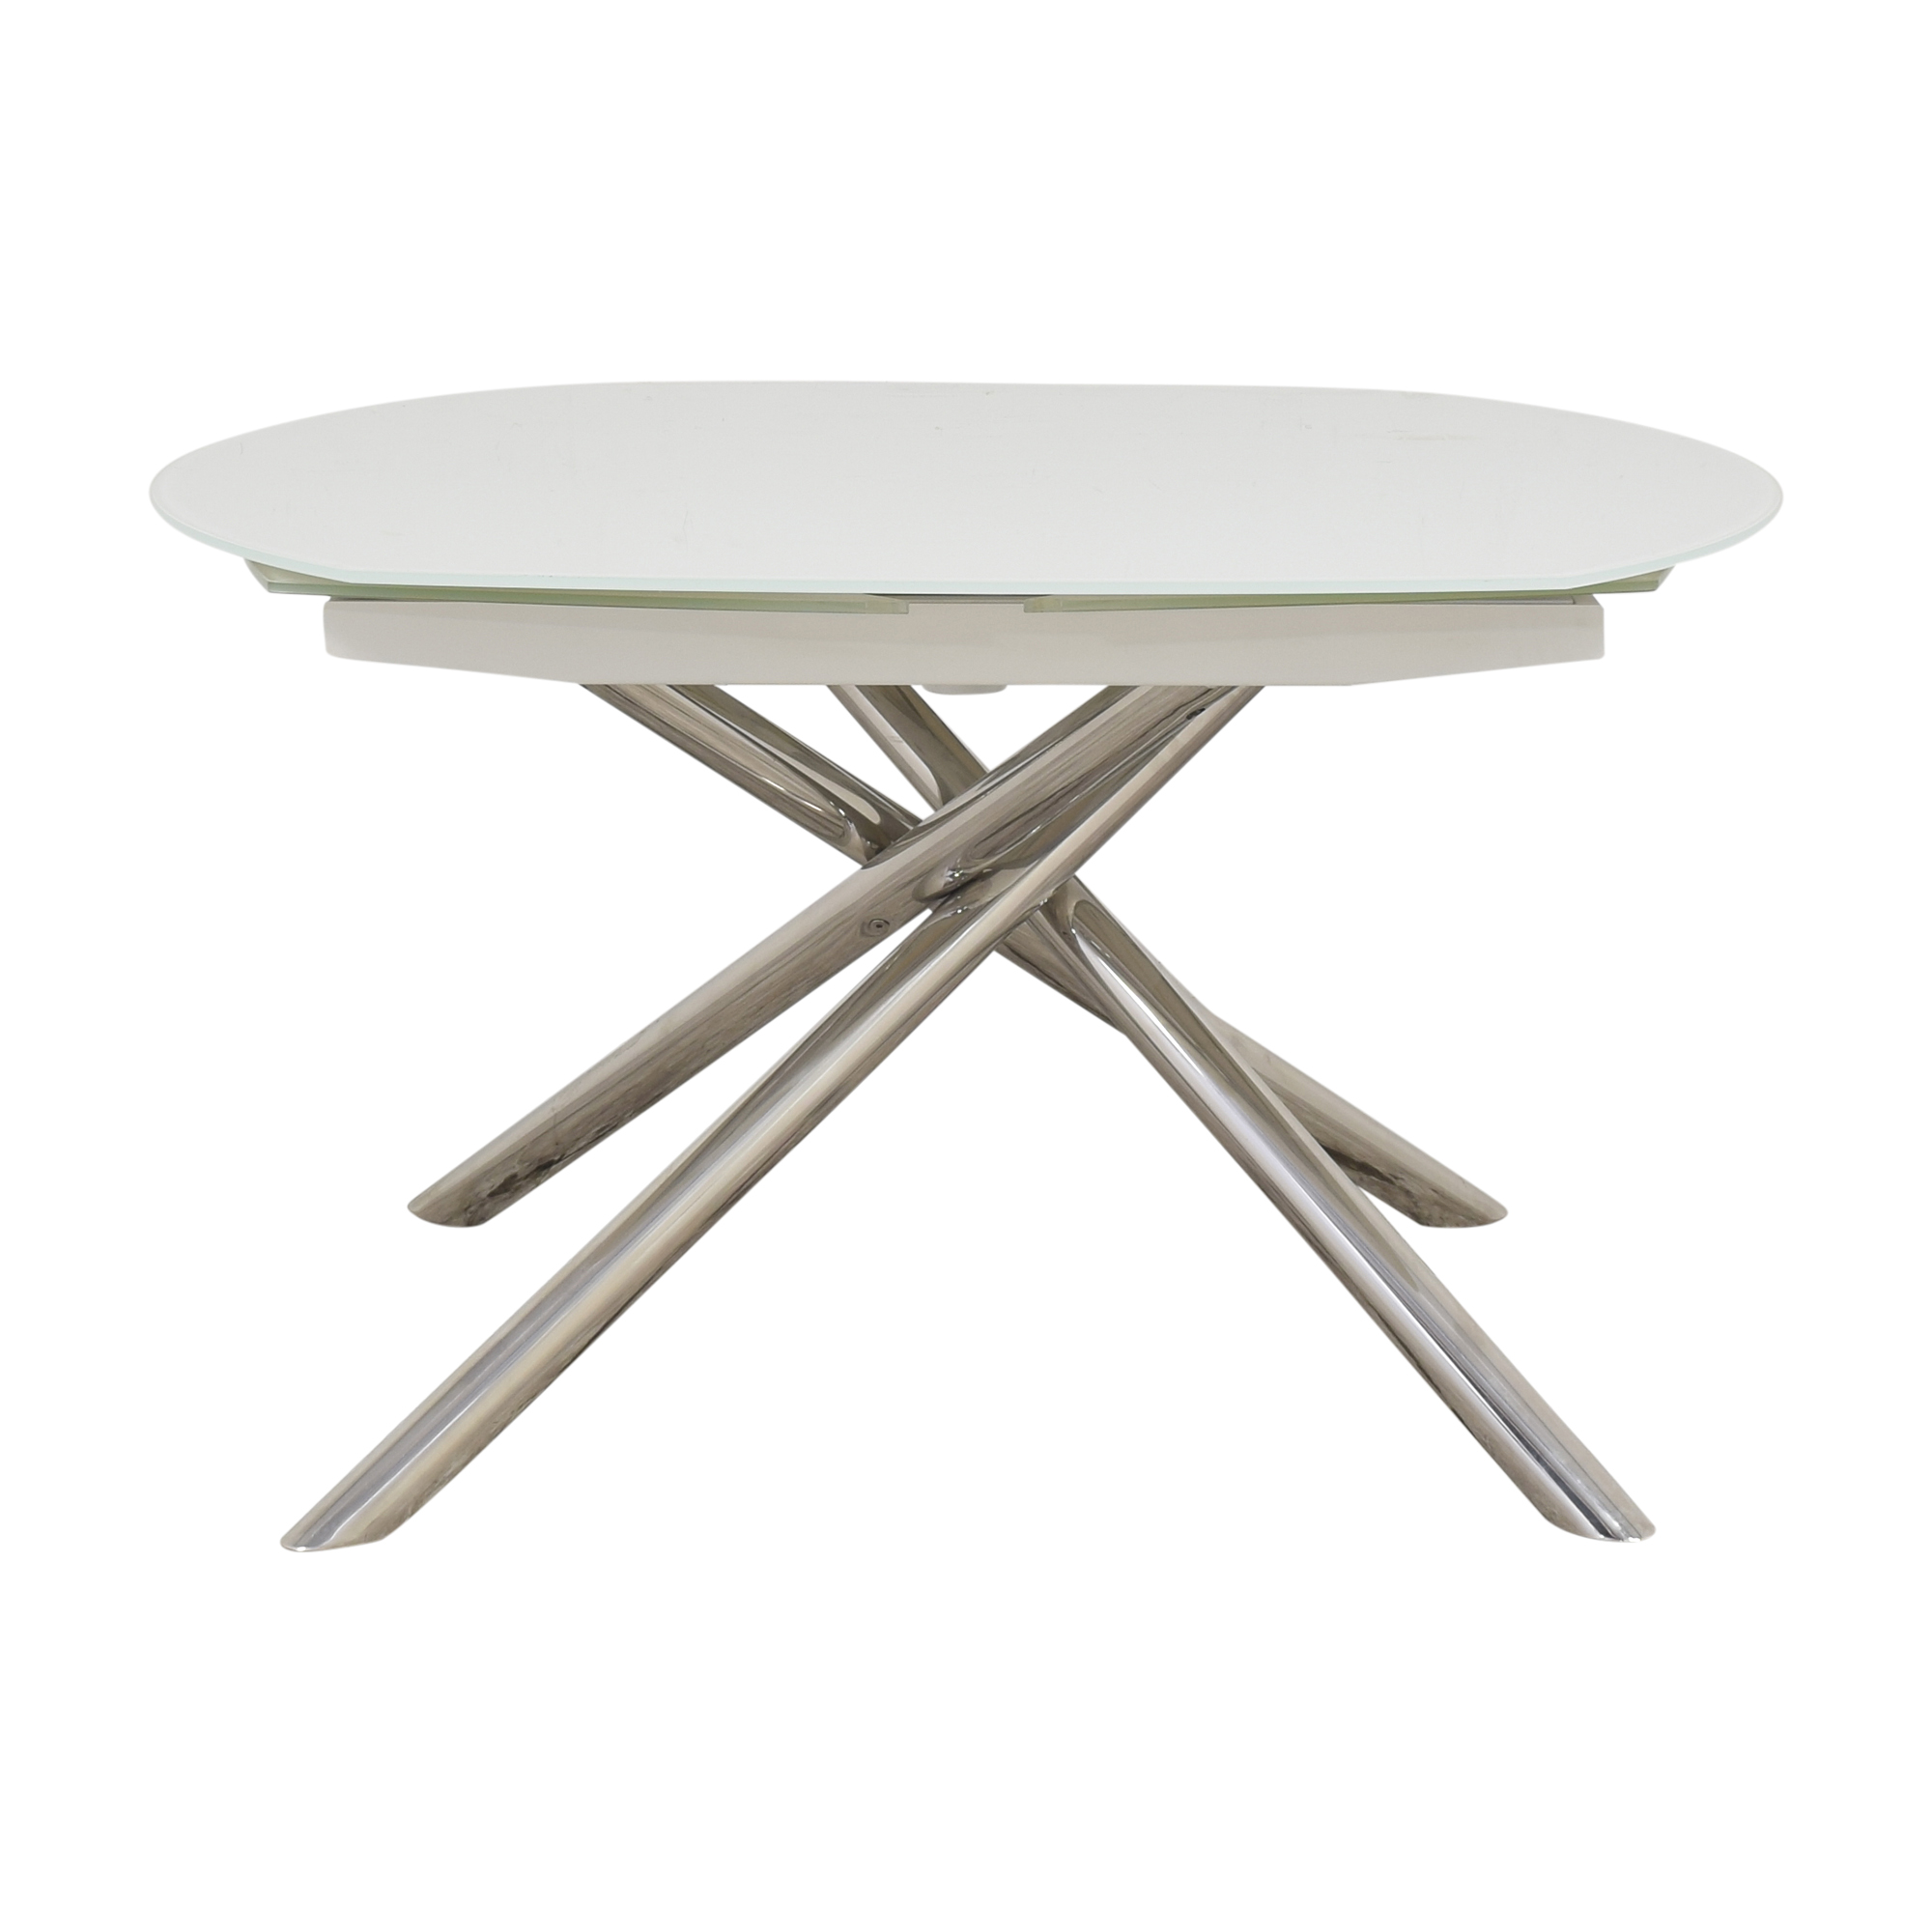 Modani Modani Astro Extendable Dining Table white and silver